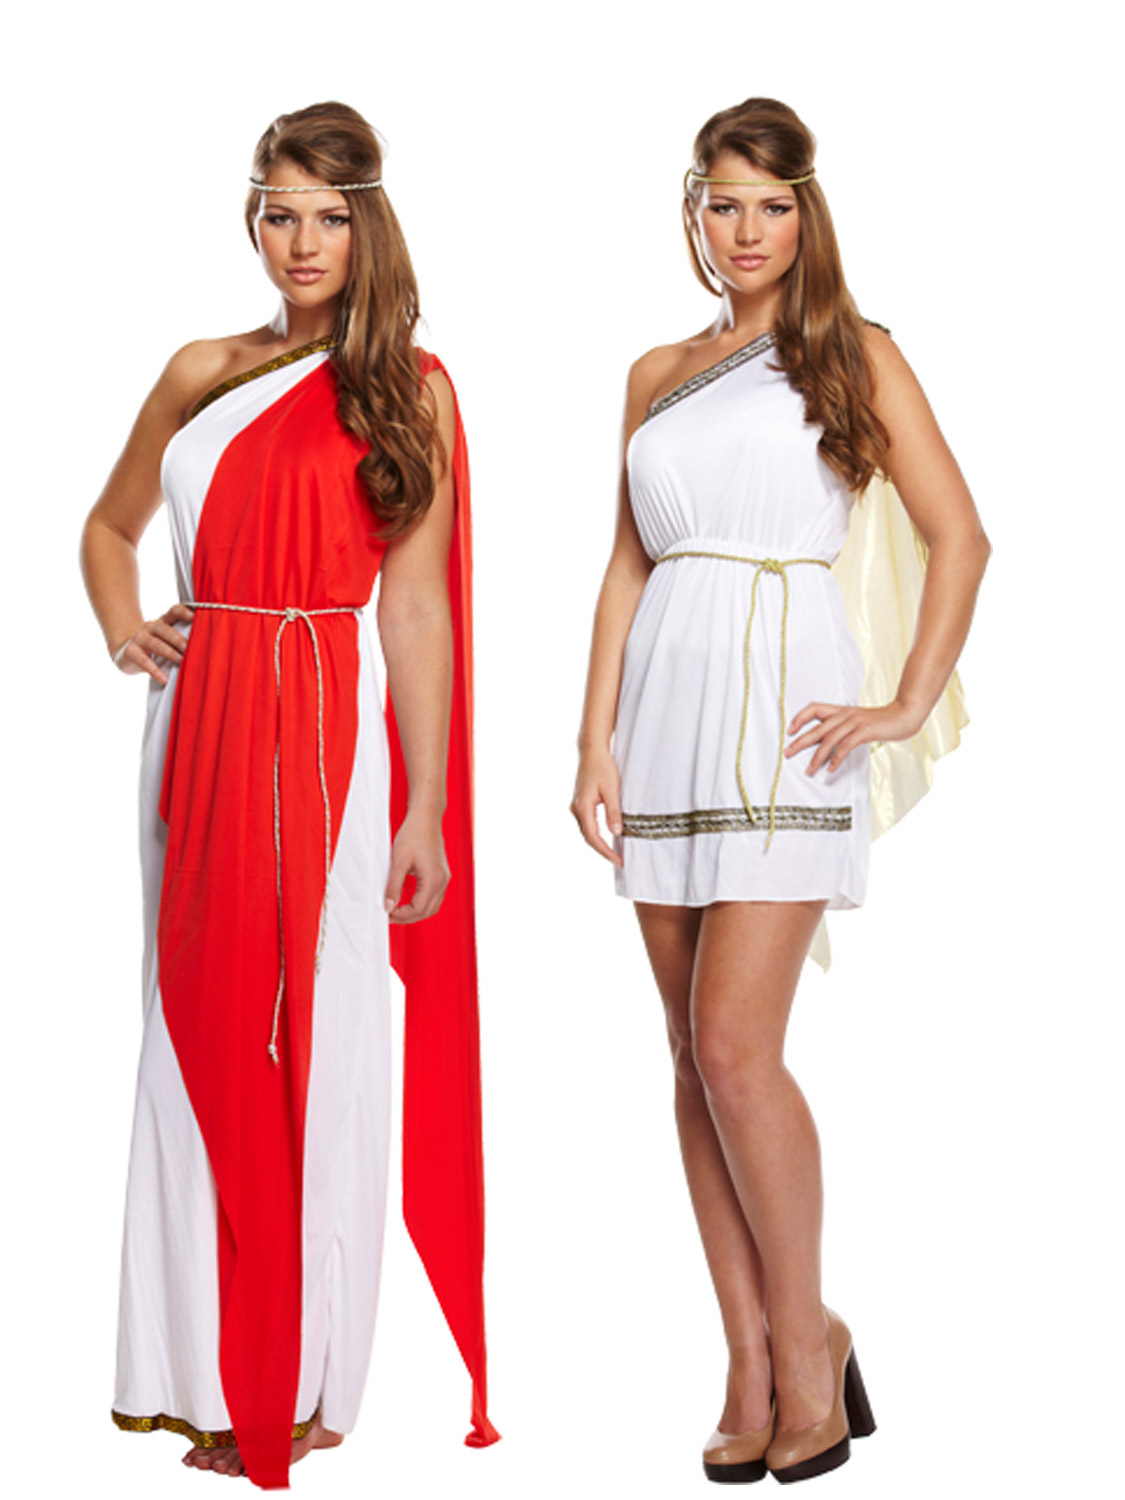 Details about Ladies Greek Roman Grecian Goddess Toga Fancy Dress Outfit  Womens Adult Costume